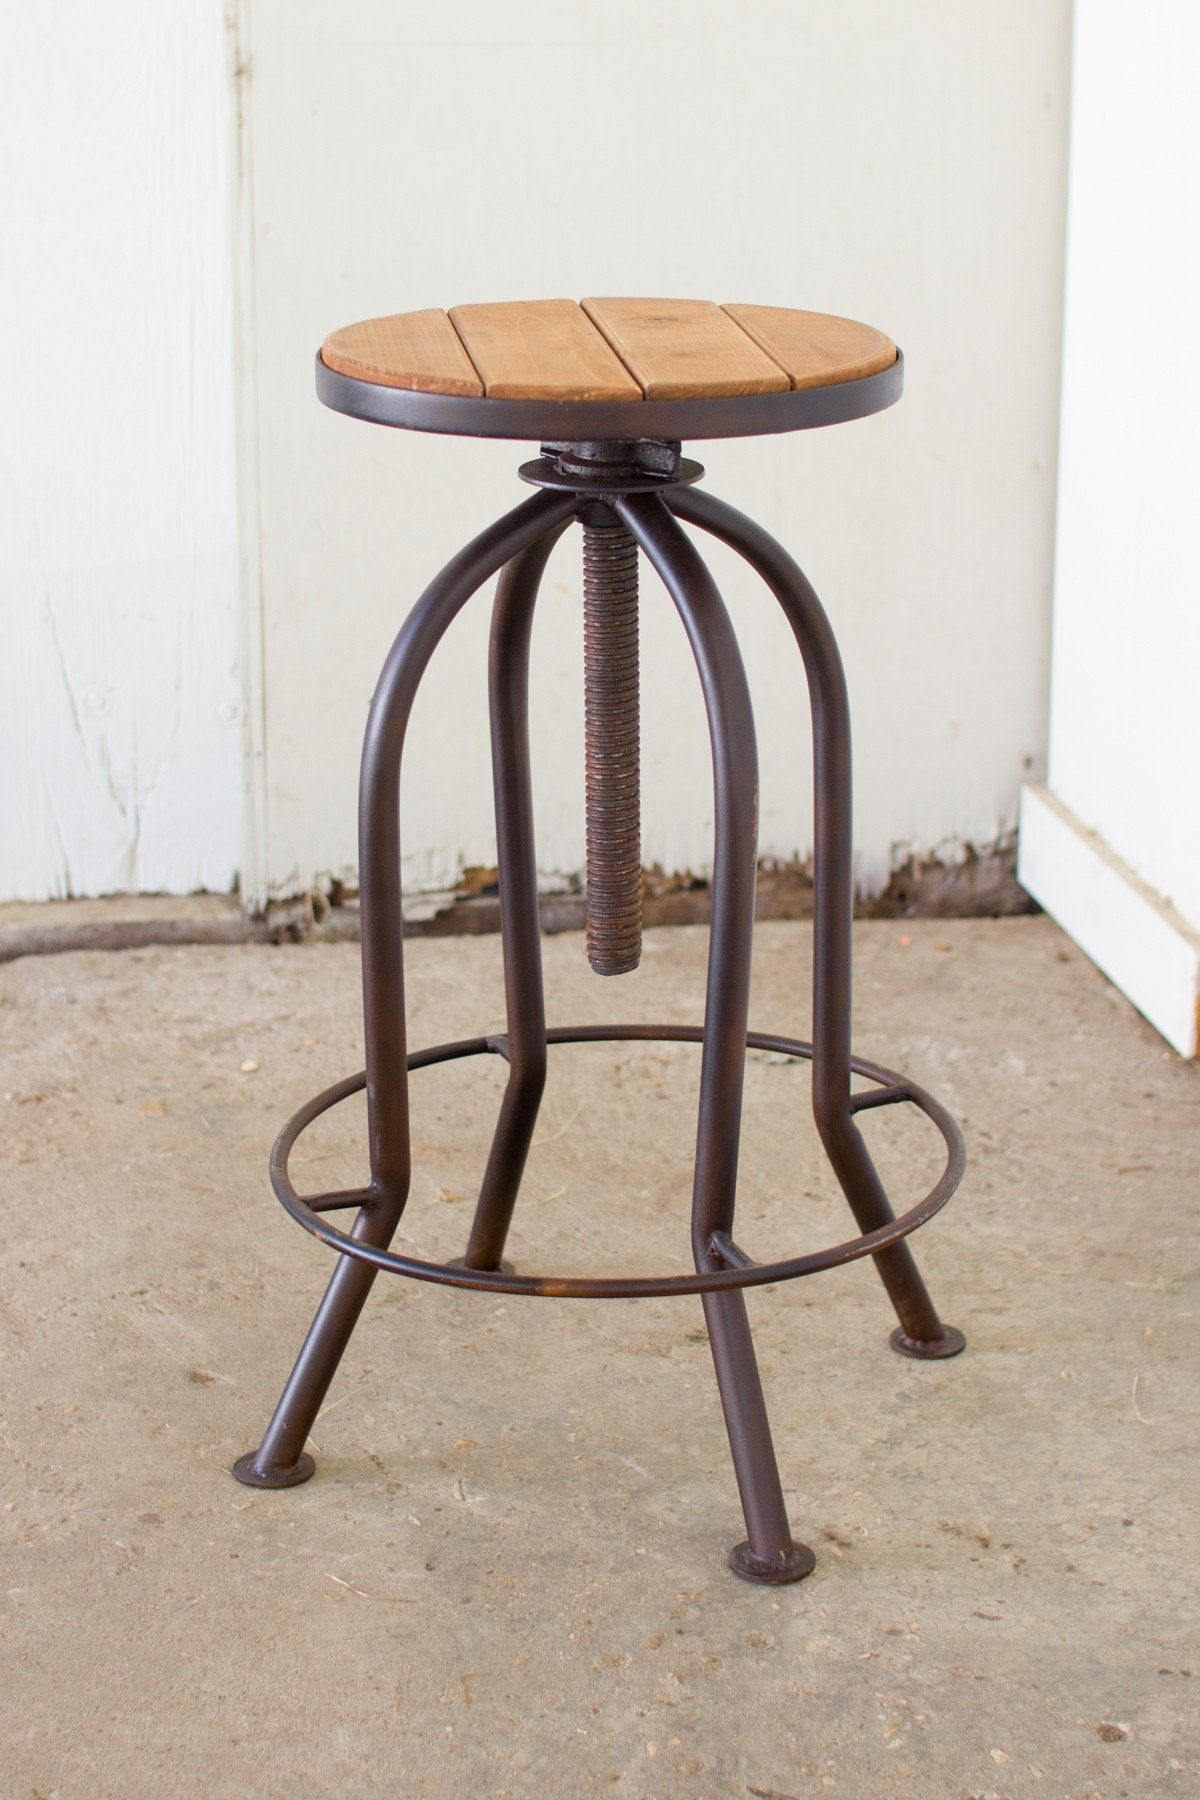 Adjustable Bar Stool With Recycled Wood Rustic Finish